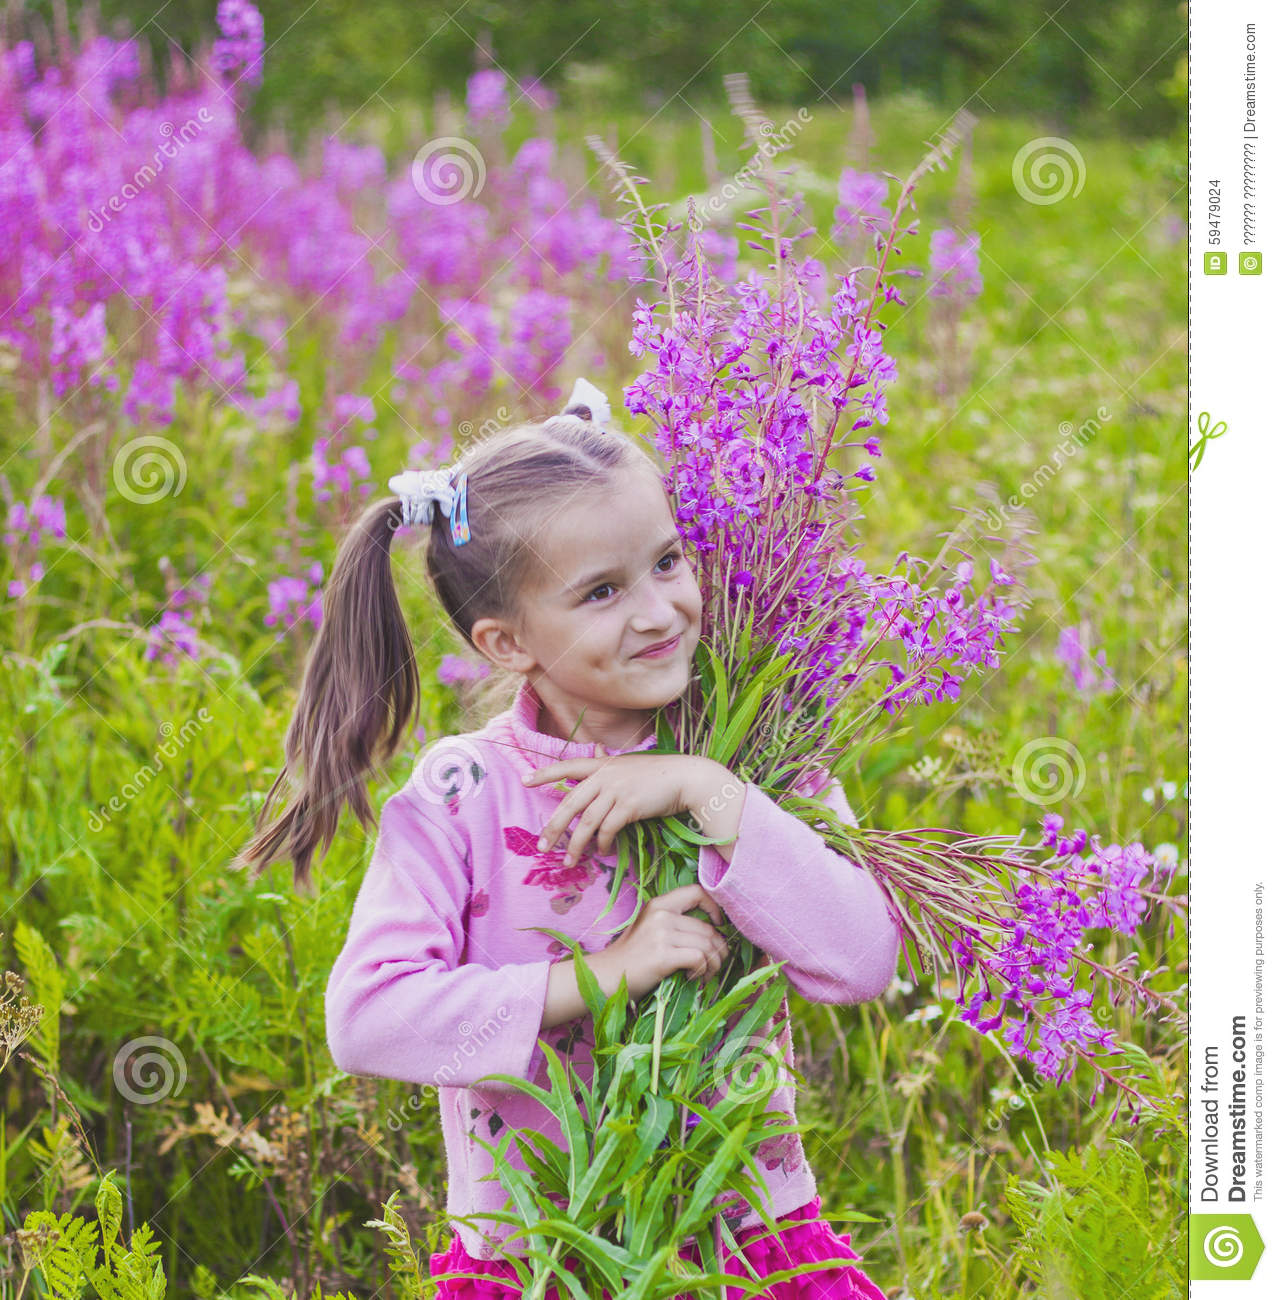 Girl with flowers in nature stock photo image 59479024 for Cheerful nature